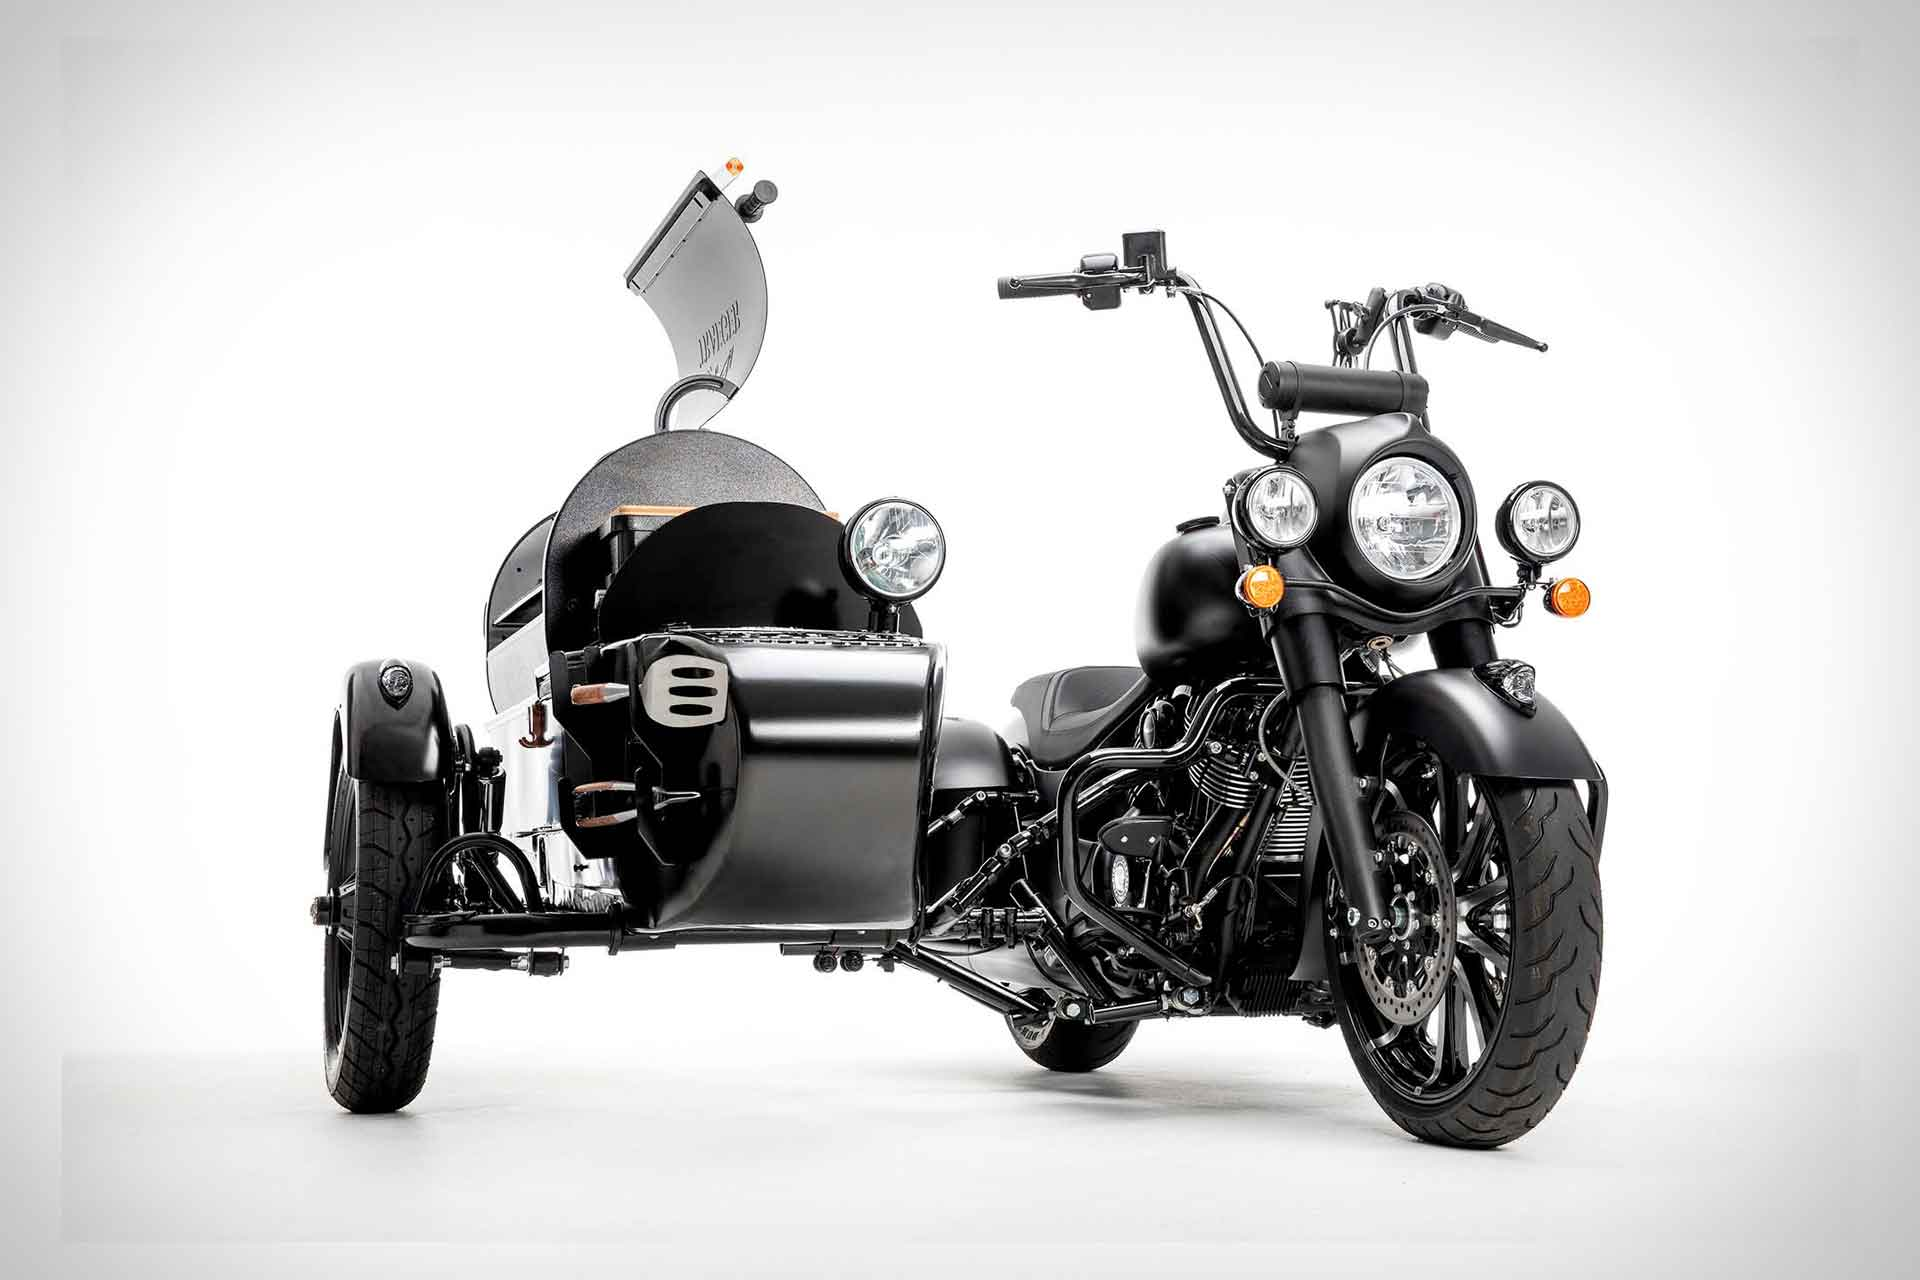 Indian x Traeger Wood-Fired Grill Motorcycle